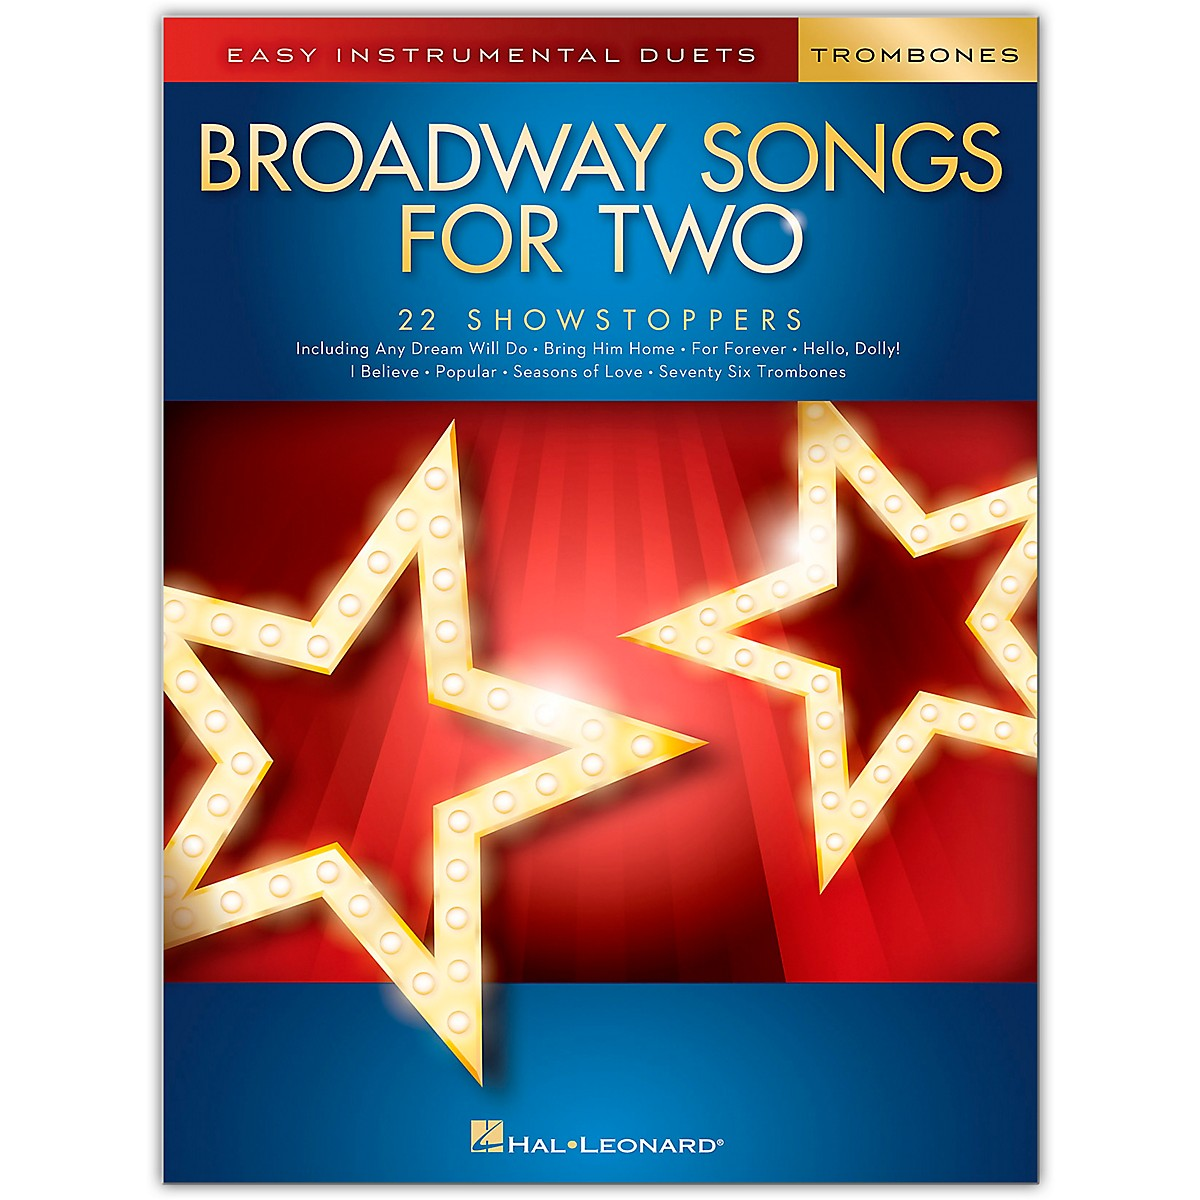 Hal Leonard Broadway Songs for Two Trombones - Easy Instrumental Duets